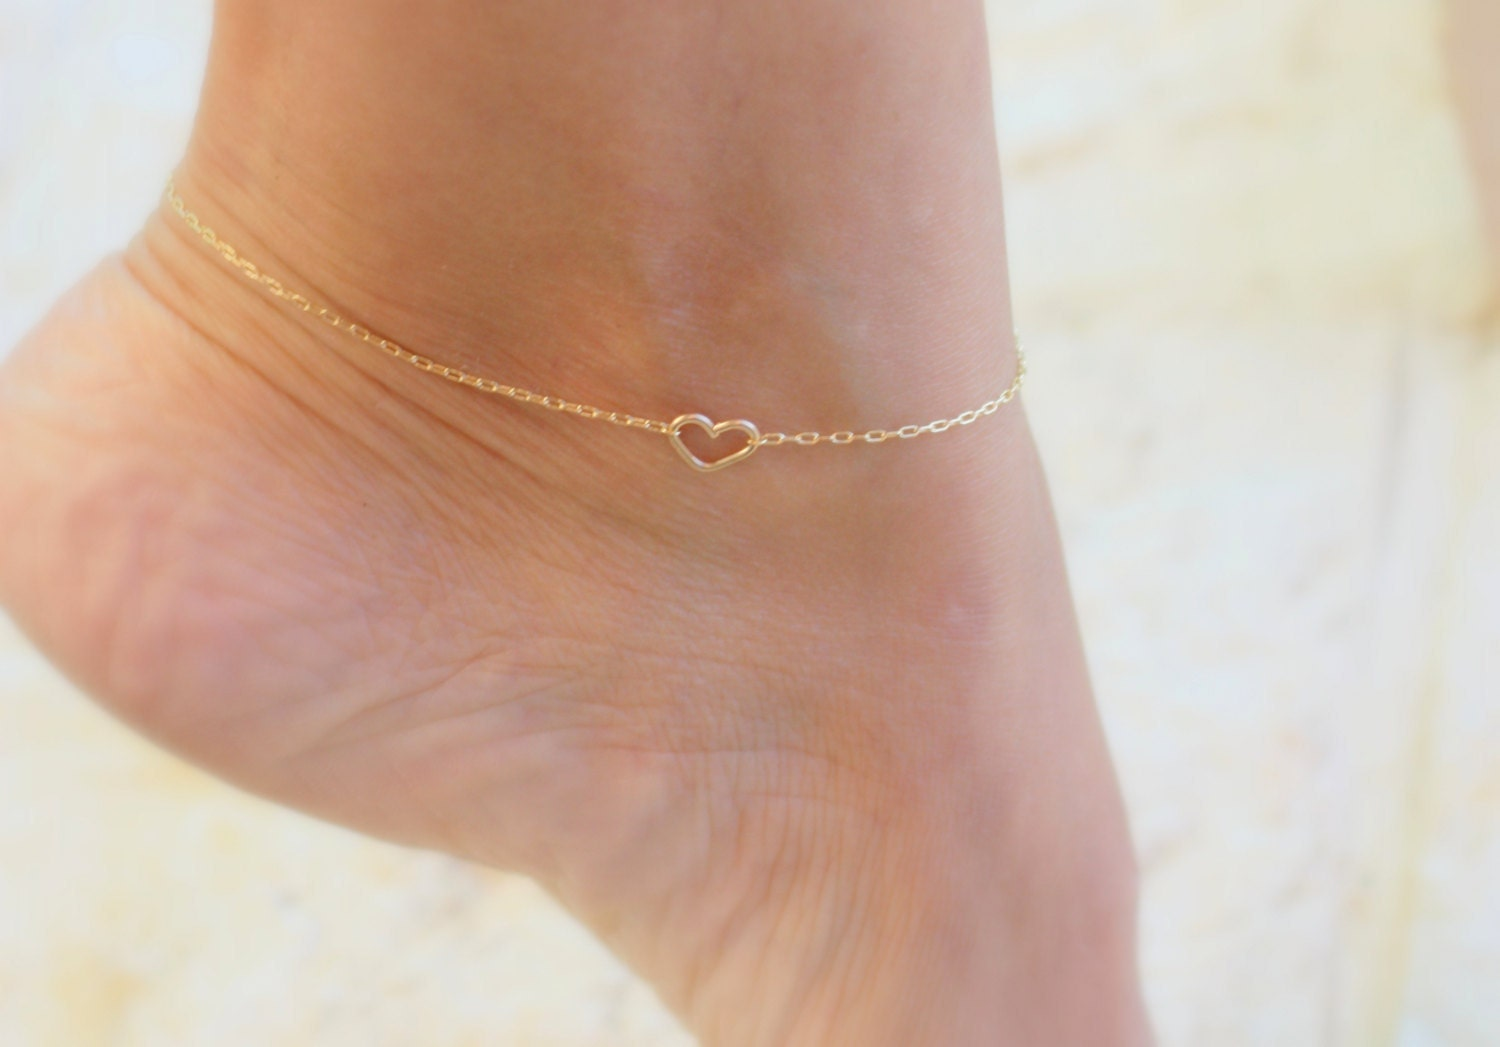 gold finejwlry bezel anklets products toe diamond shopify anklet productimg single bijou nana collections bracelet ankle foot